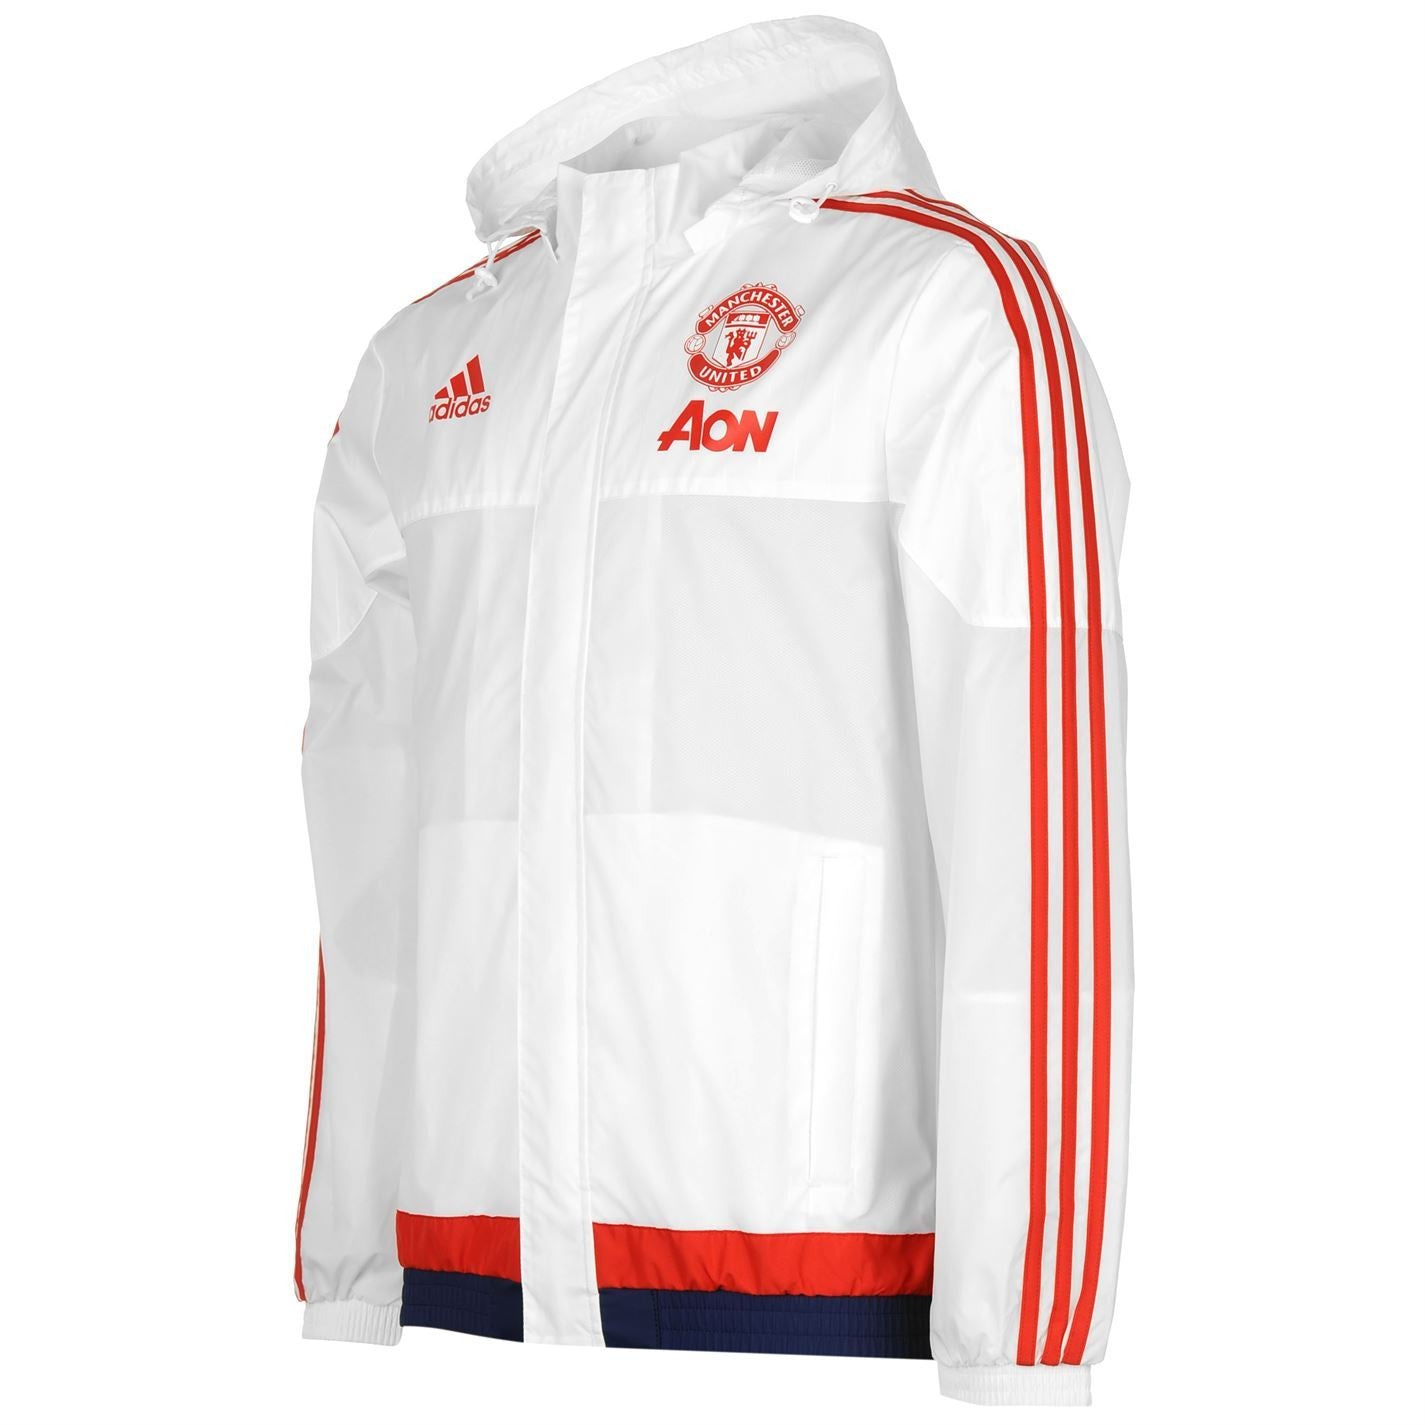 843fc66dd7c ... man united white jacket manchester united white jacket on sale   OFF76%  Discounts ...